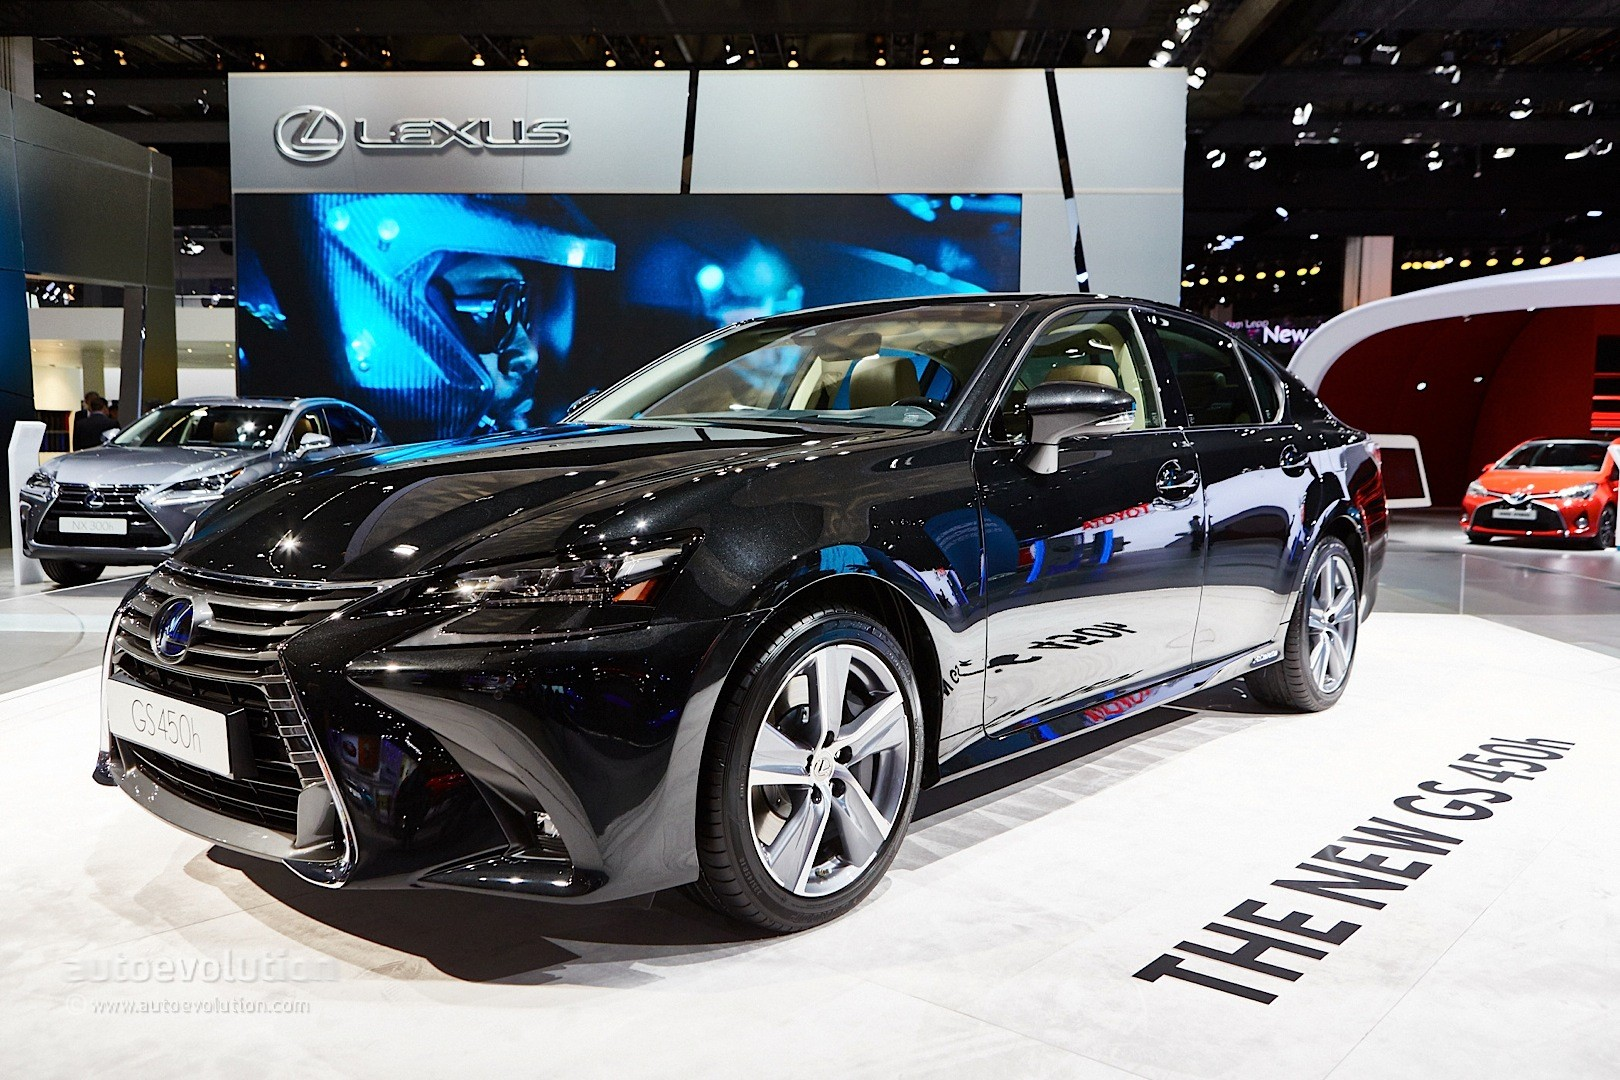 2016 Lexus GS 450h Facelift Debuts with Spindle Grille 2.0 ...